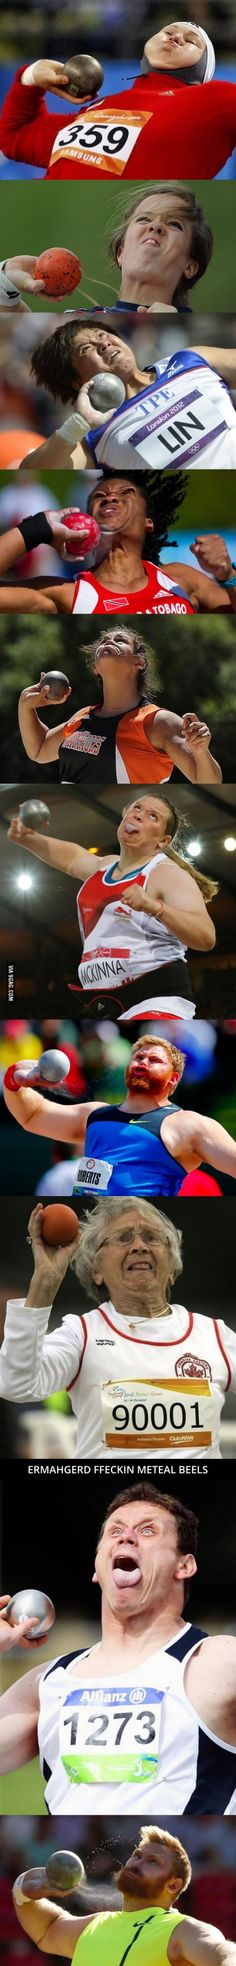 ... Have you guys heard about shot put faces?....